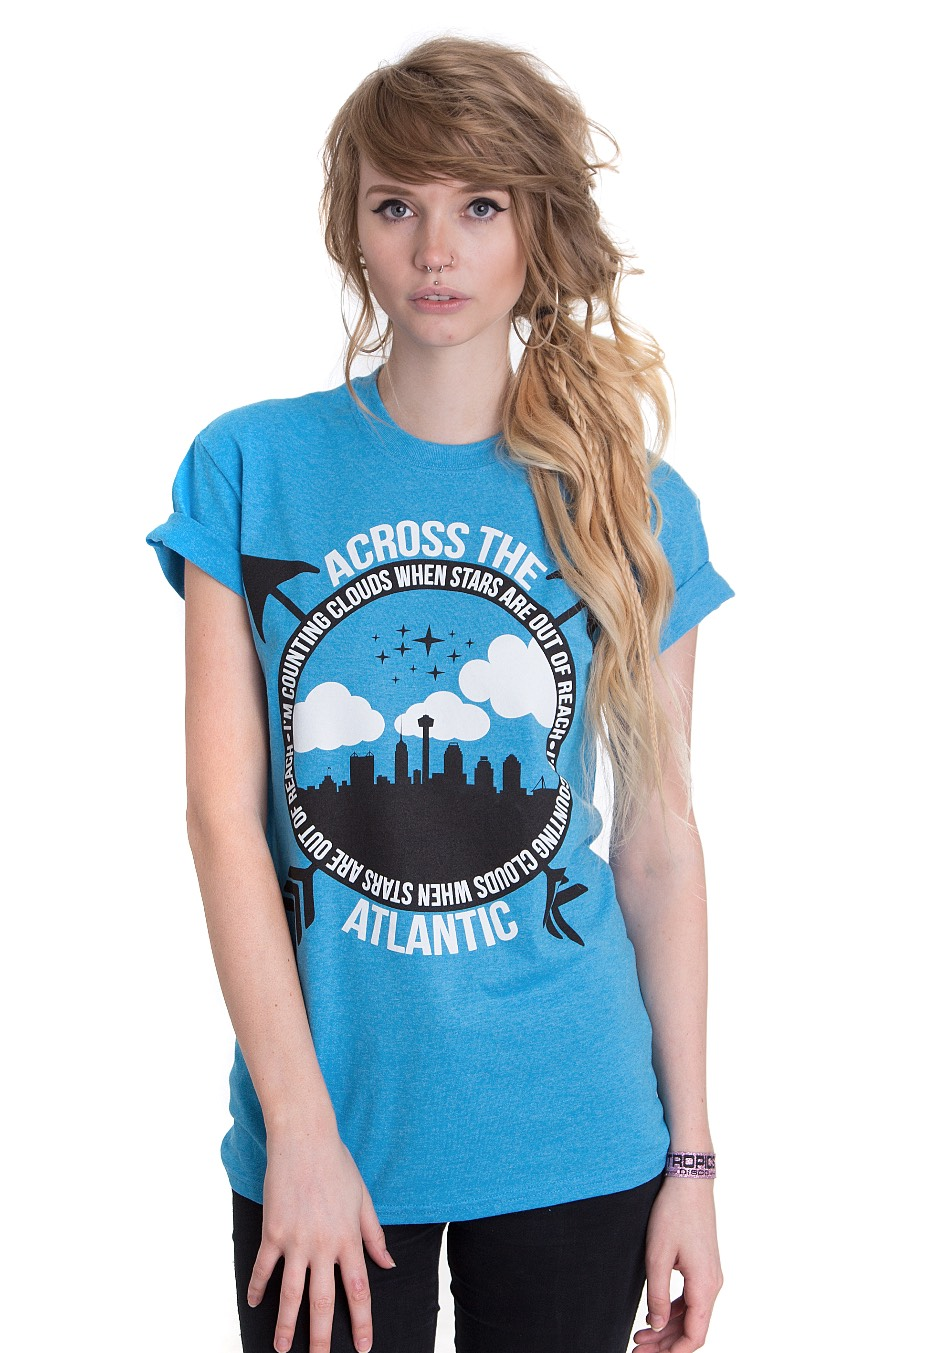 Across the atlantic counting clouds heather sapphire t for La imprints t shirts